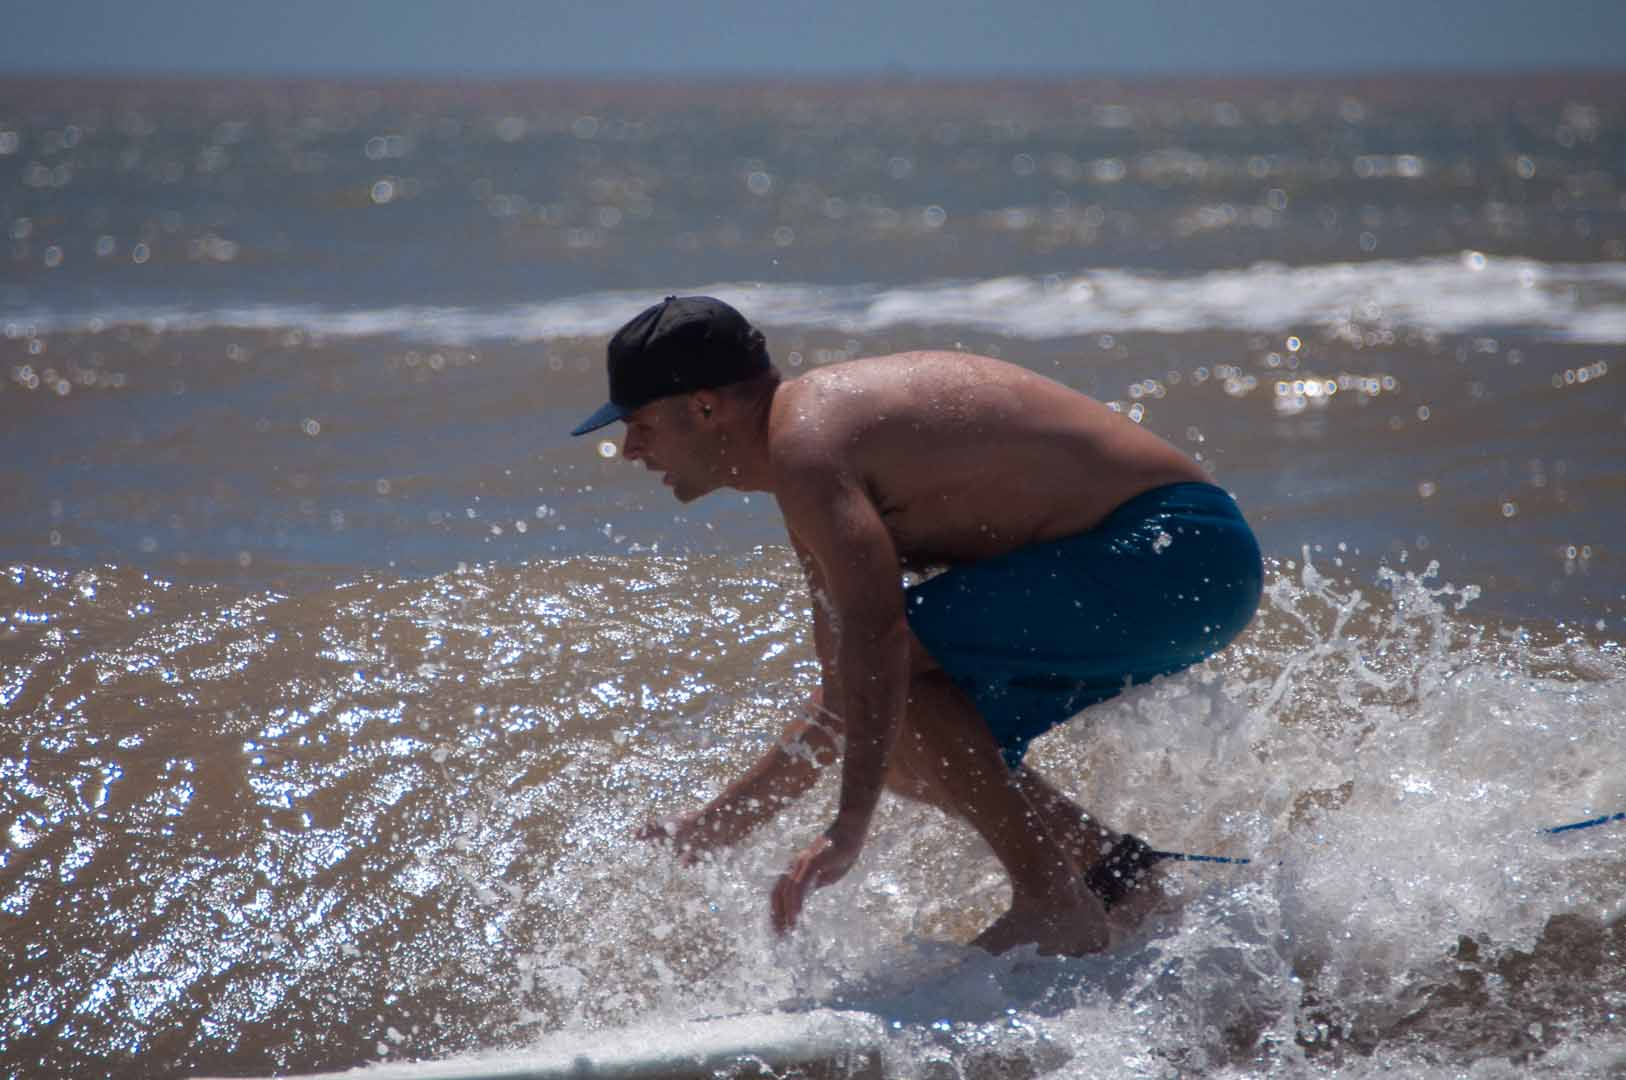 SurfsideLateJune_20150627_125